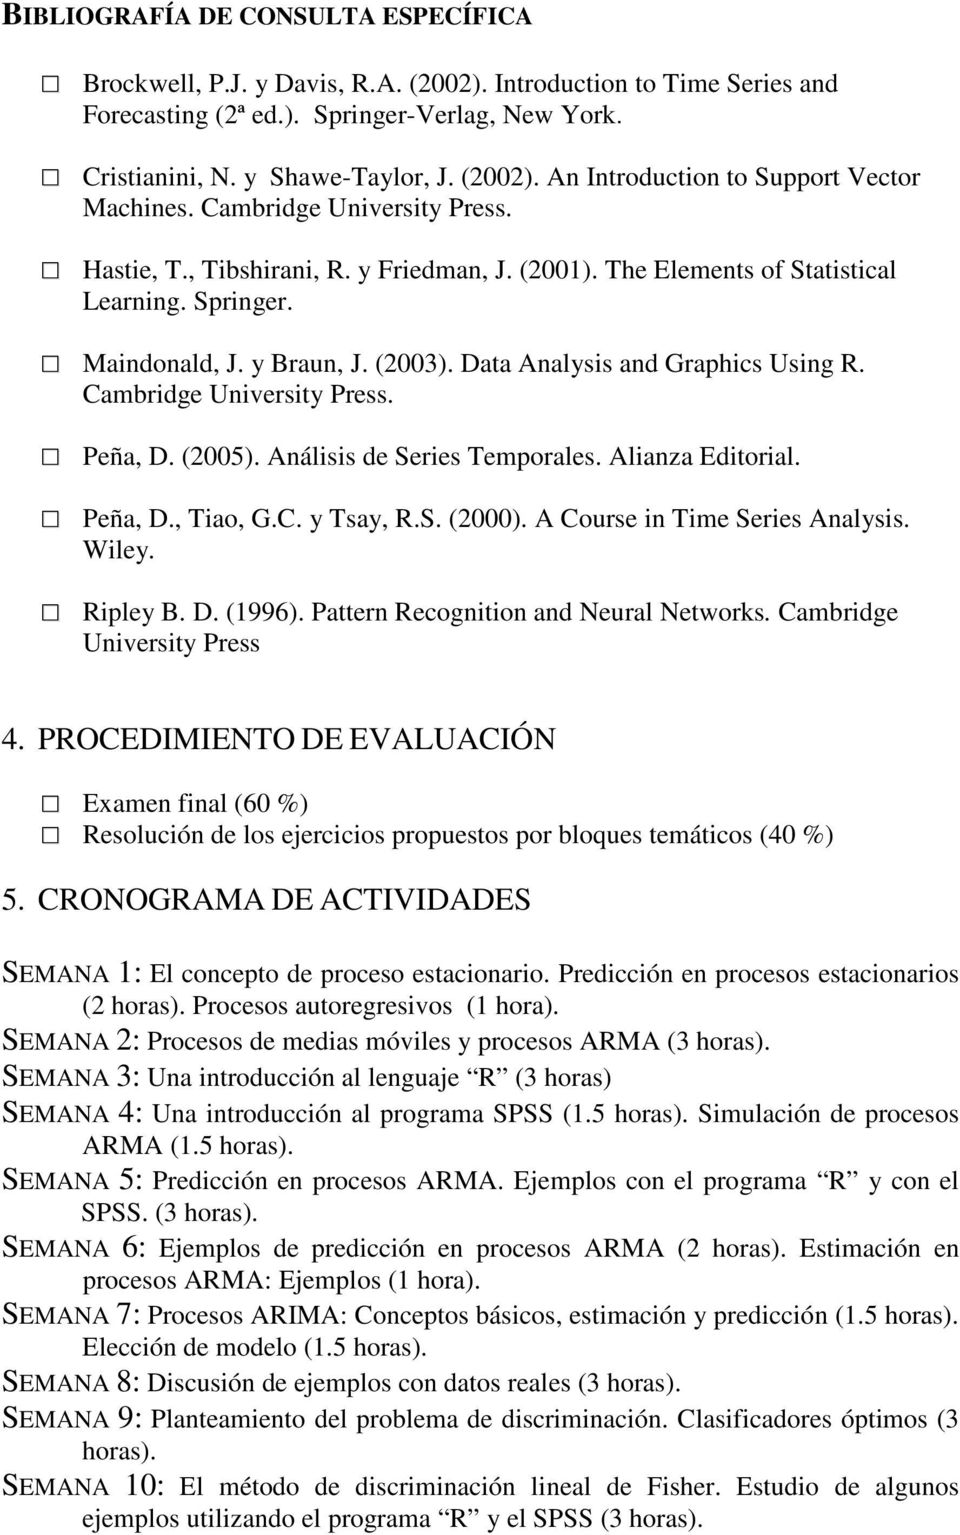 Cambridge University Press. Peña, D. (2005). Análisis de Series Temporales. Alianza Editorial. Peña, D., Tiao, G.C. y Tsay, R.S. (2000). A Course in Time Series Analysis. Wiley. Ripley B. D. (1996).